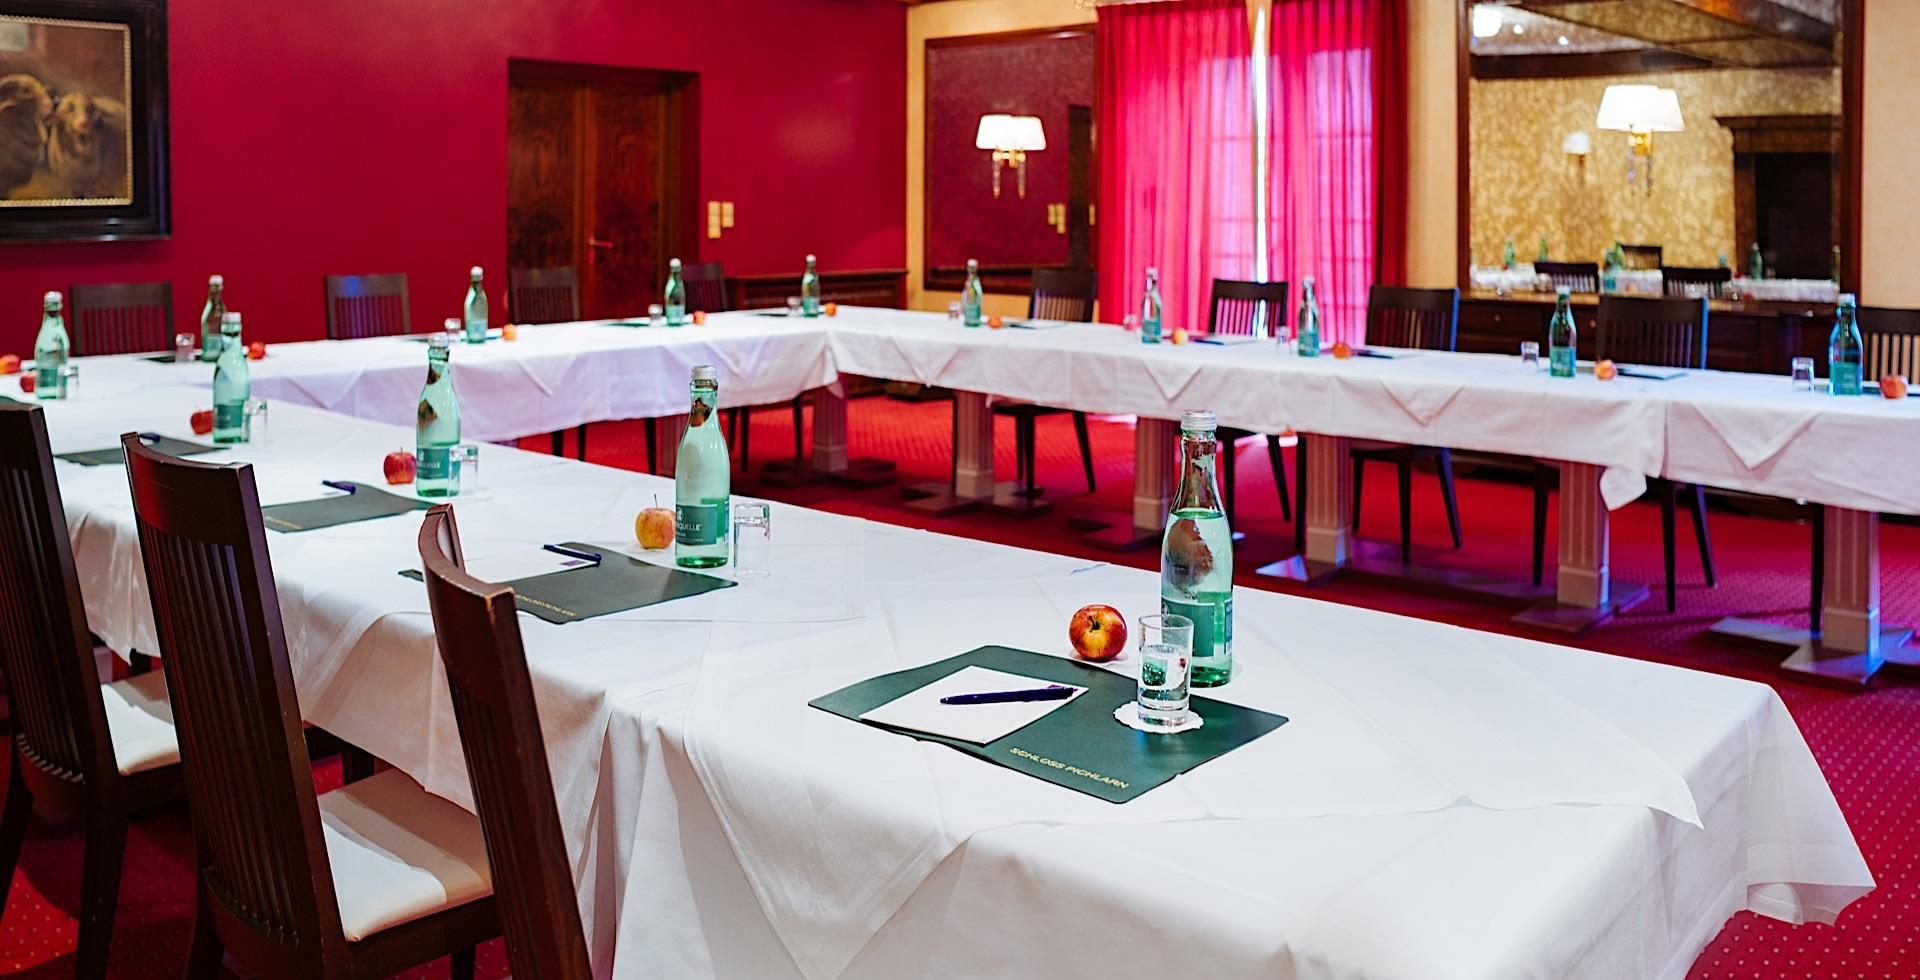 Meeting Room Spiegelsaal I at Romantik Hotel Schloss Pichlarn, A